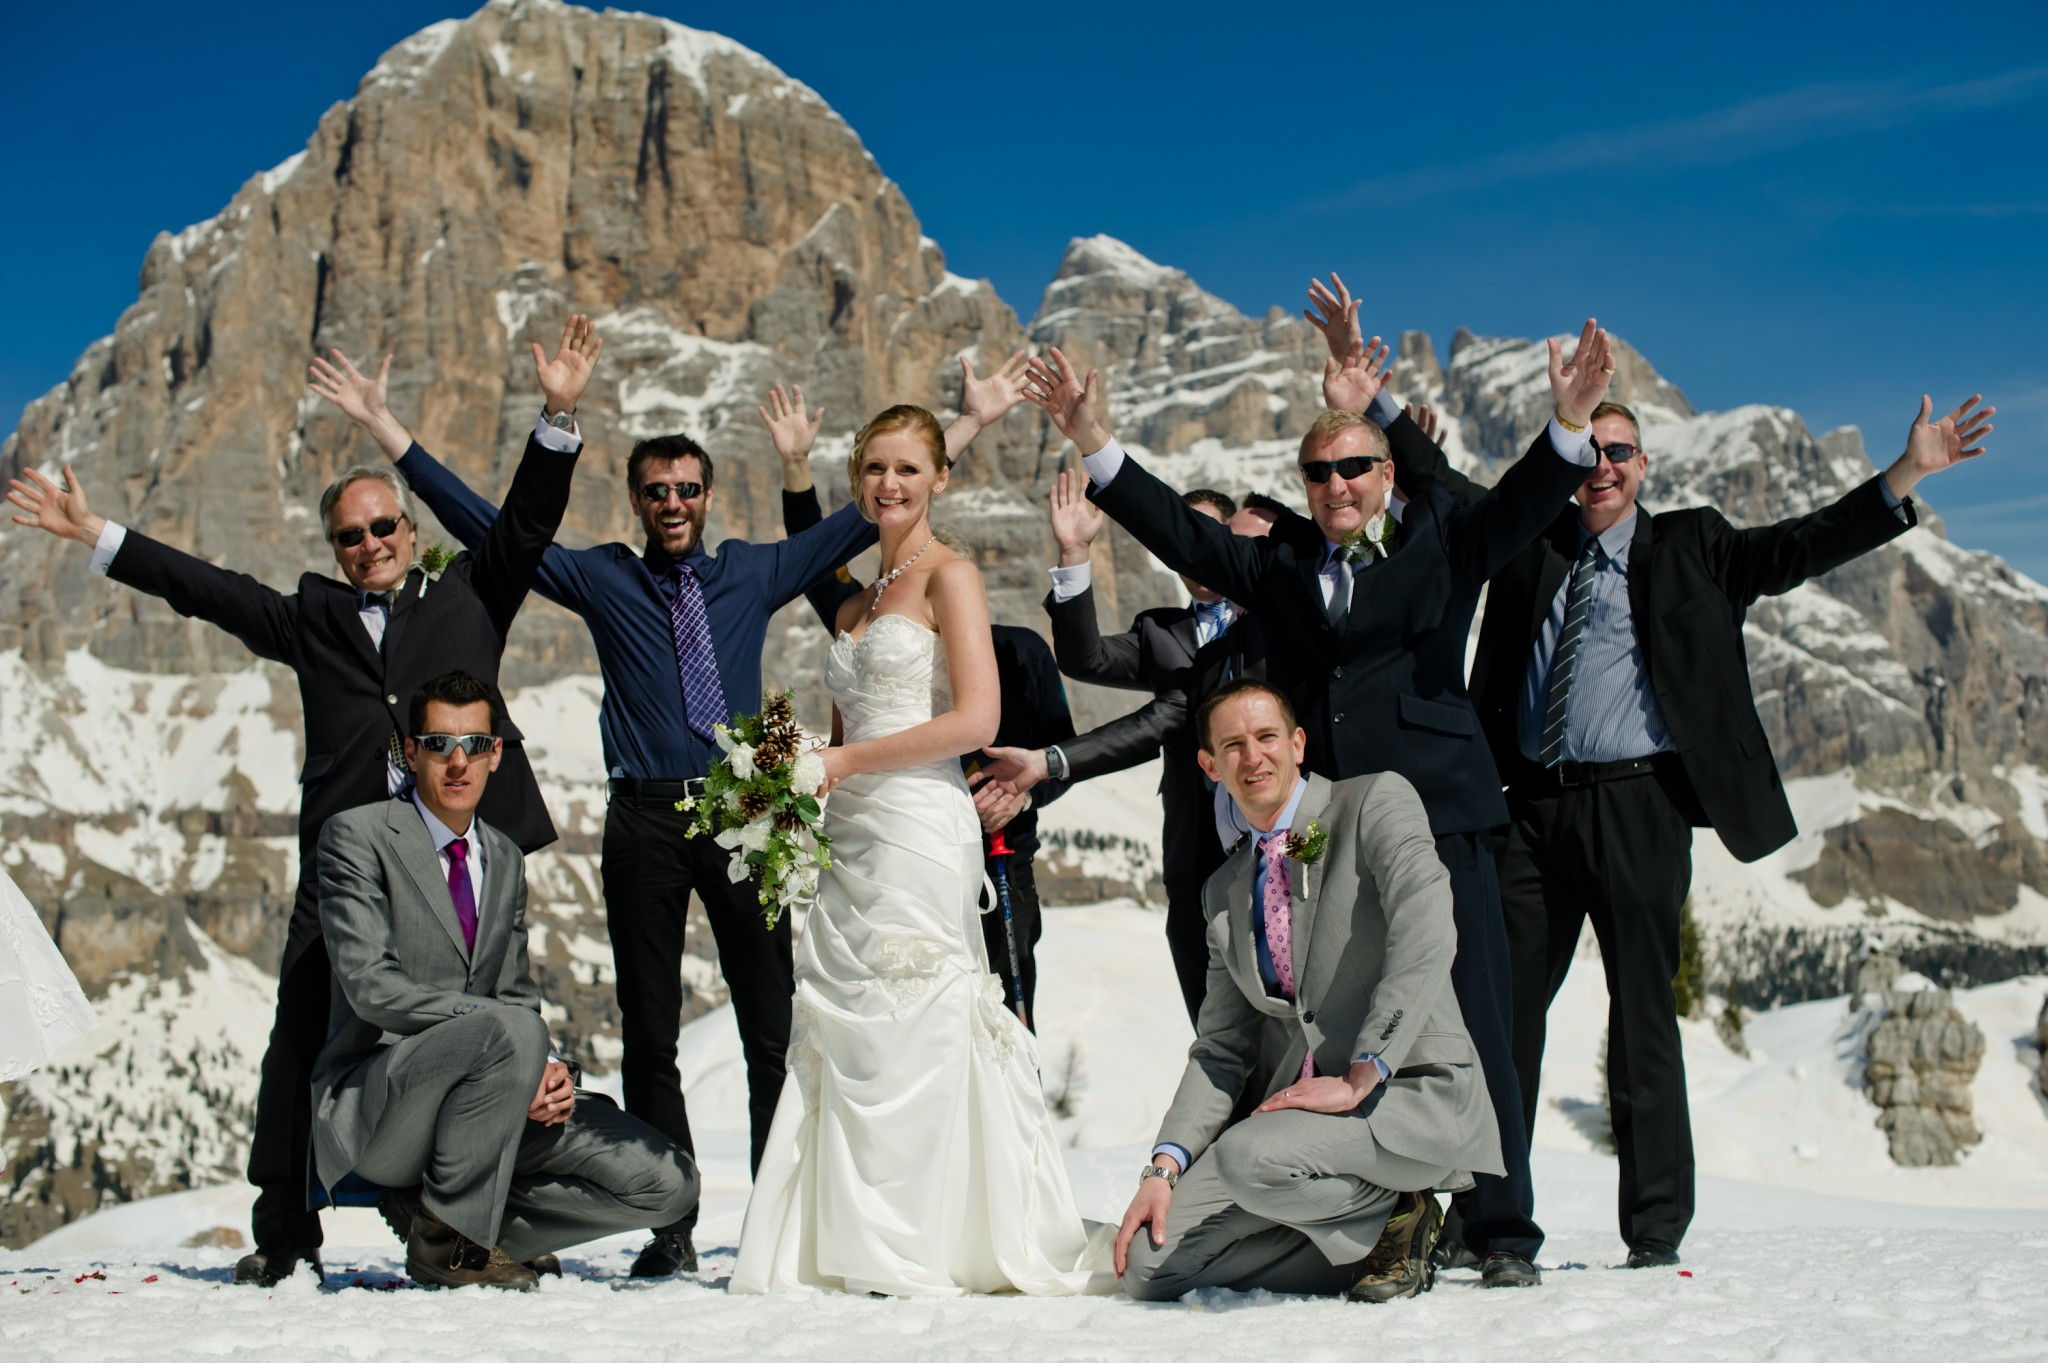 The Song Lyric Its A Nice Day For White Wedding Takes On Whole New Meaning With Backdrop Of Spectacular Snowy Mountain Scenery And It Should Be